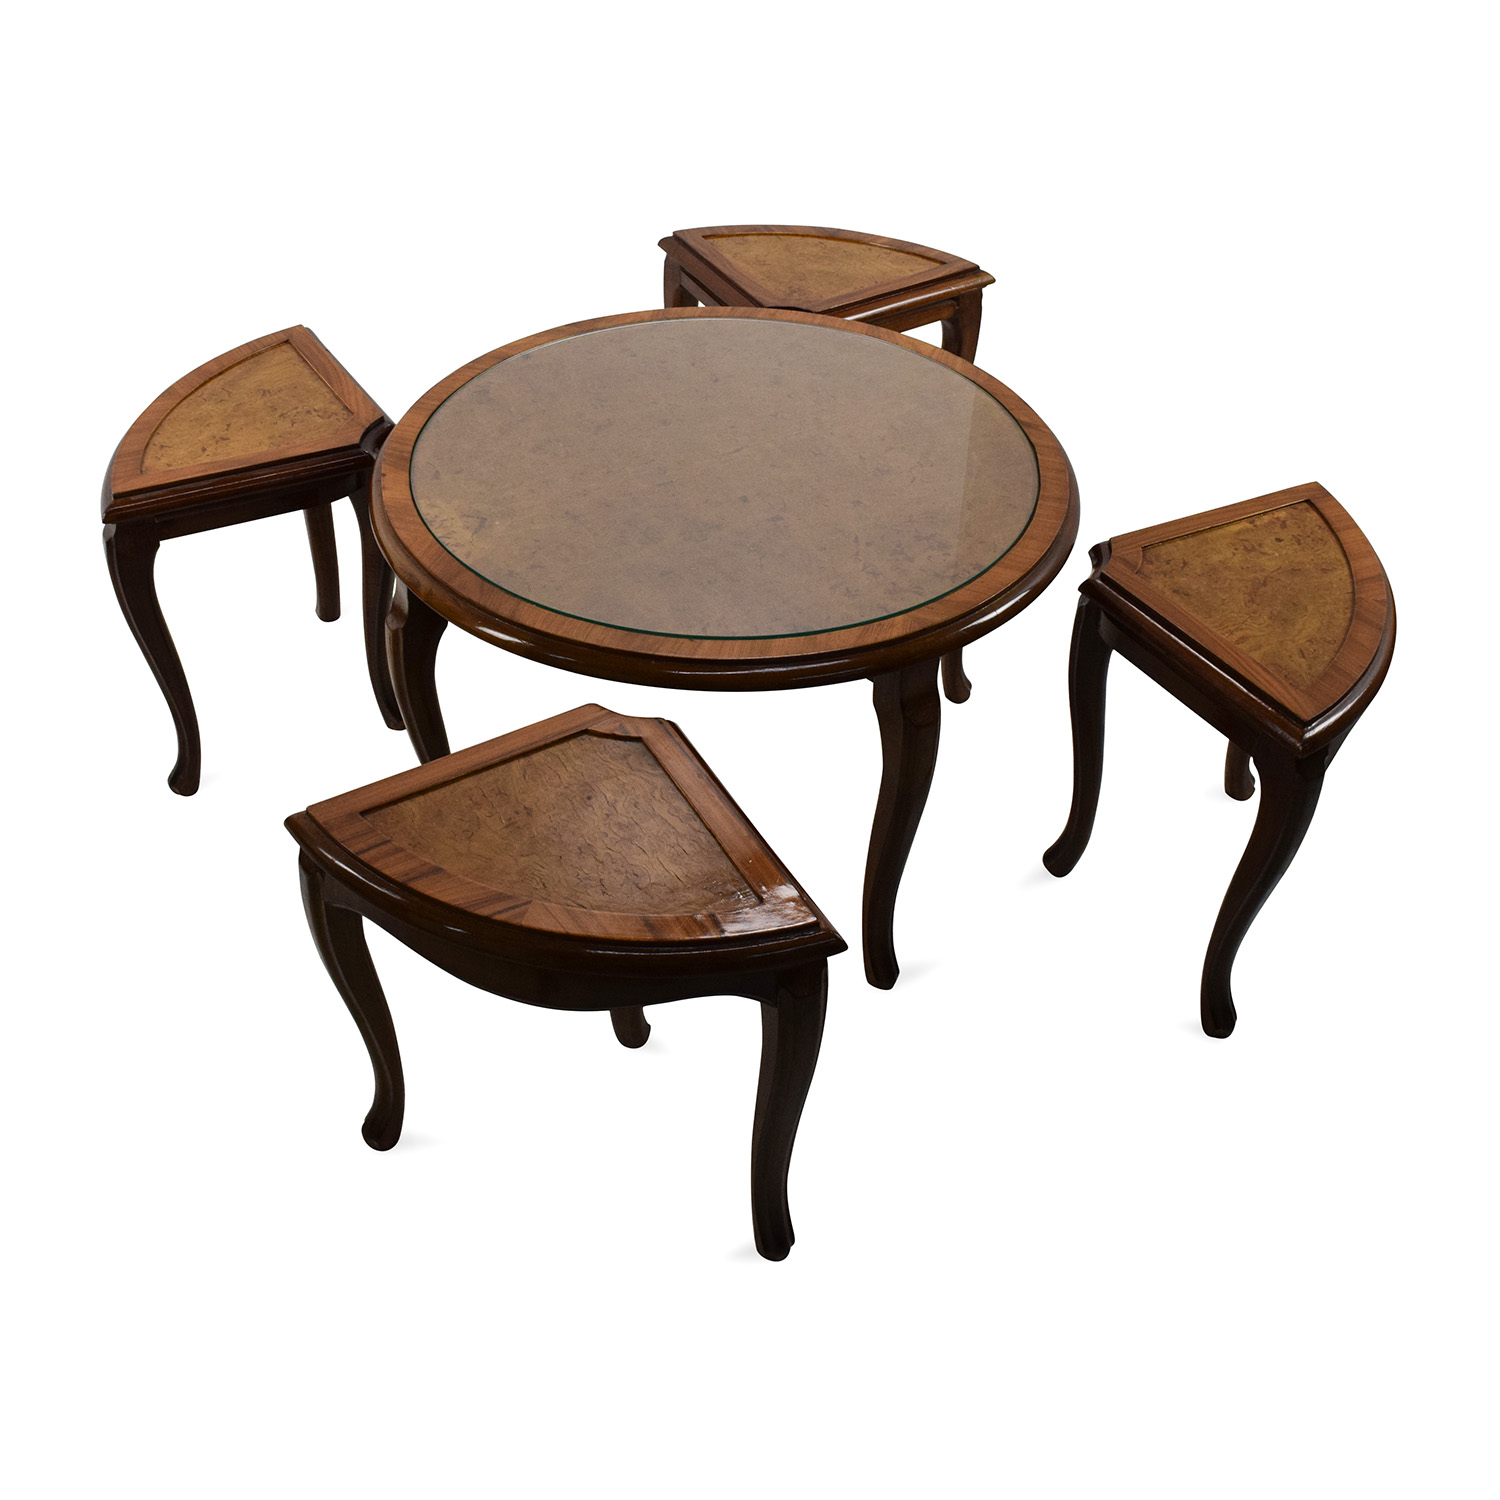 ... Round Glass Top Coffee Table With 4 Nesting Stools Nyc ...